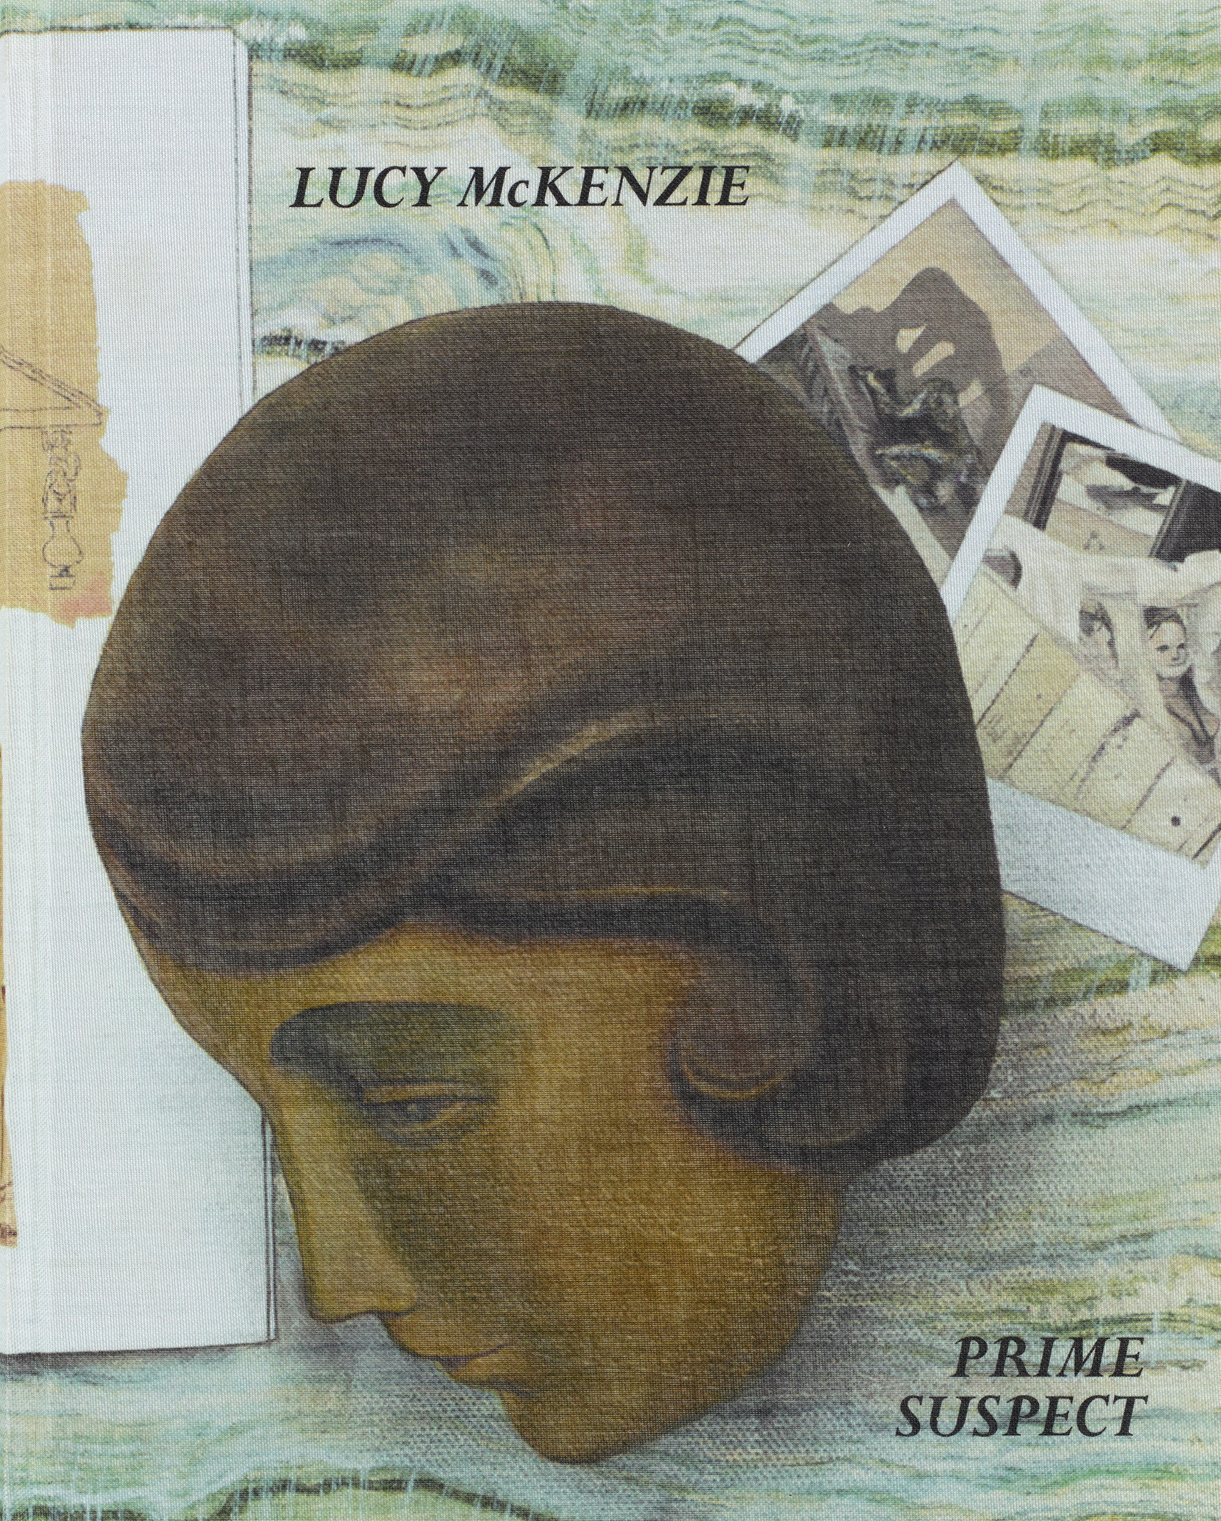 Lucy McKenzie – Prime Suspect 2020, 336 pages, hardcover, fully illustrated in color, 27,5 x 22 cm EUR 49,80,- – This comprehensive catalogue is published on the occasion of Lucy McKenzie's survey exhibition at Museum Brandhorst in Munich and Tate Liverpool. The catalogue, edited by Jacob Proctor, contains new texts by Jacob Proctor, Mason Leaver-Yap, Anne Pontégnie, Leah Pires and a short story by Lucy McKenzie. The catalogue is published in both German and English language editions by Museum Brandhorst and Verlag der Buchhandlung Walther und Franz König.